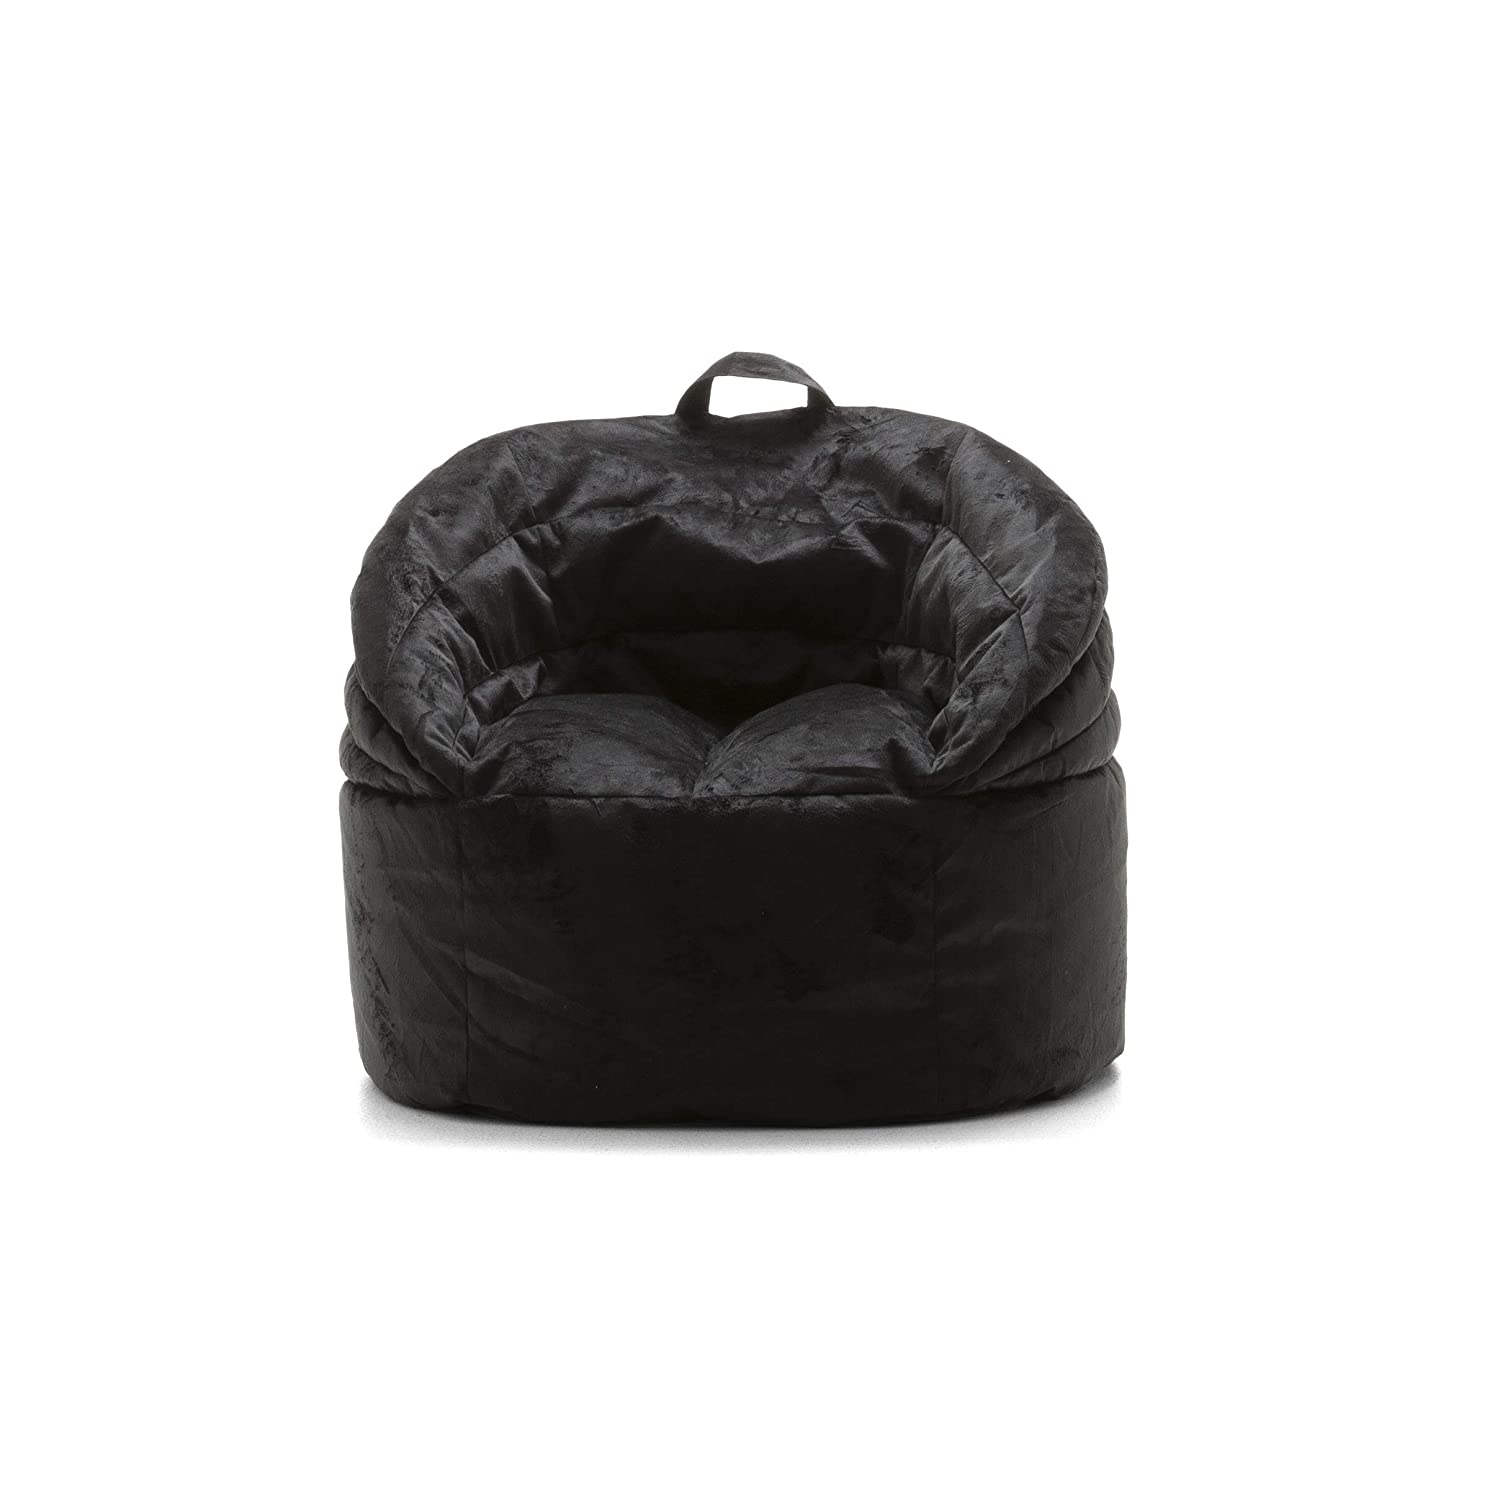 Big Joe 0680540 Stack Chair, Black Plush Bean Bag,